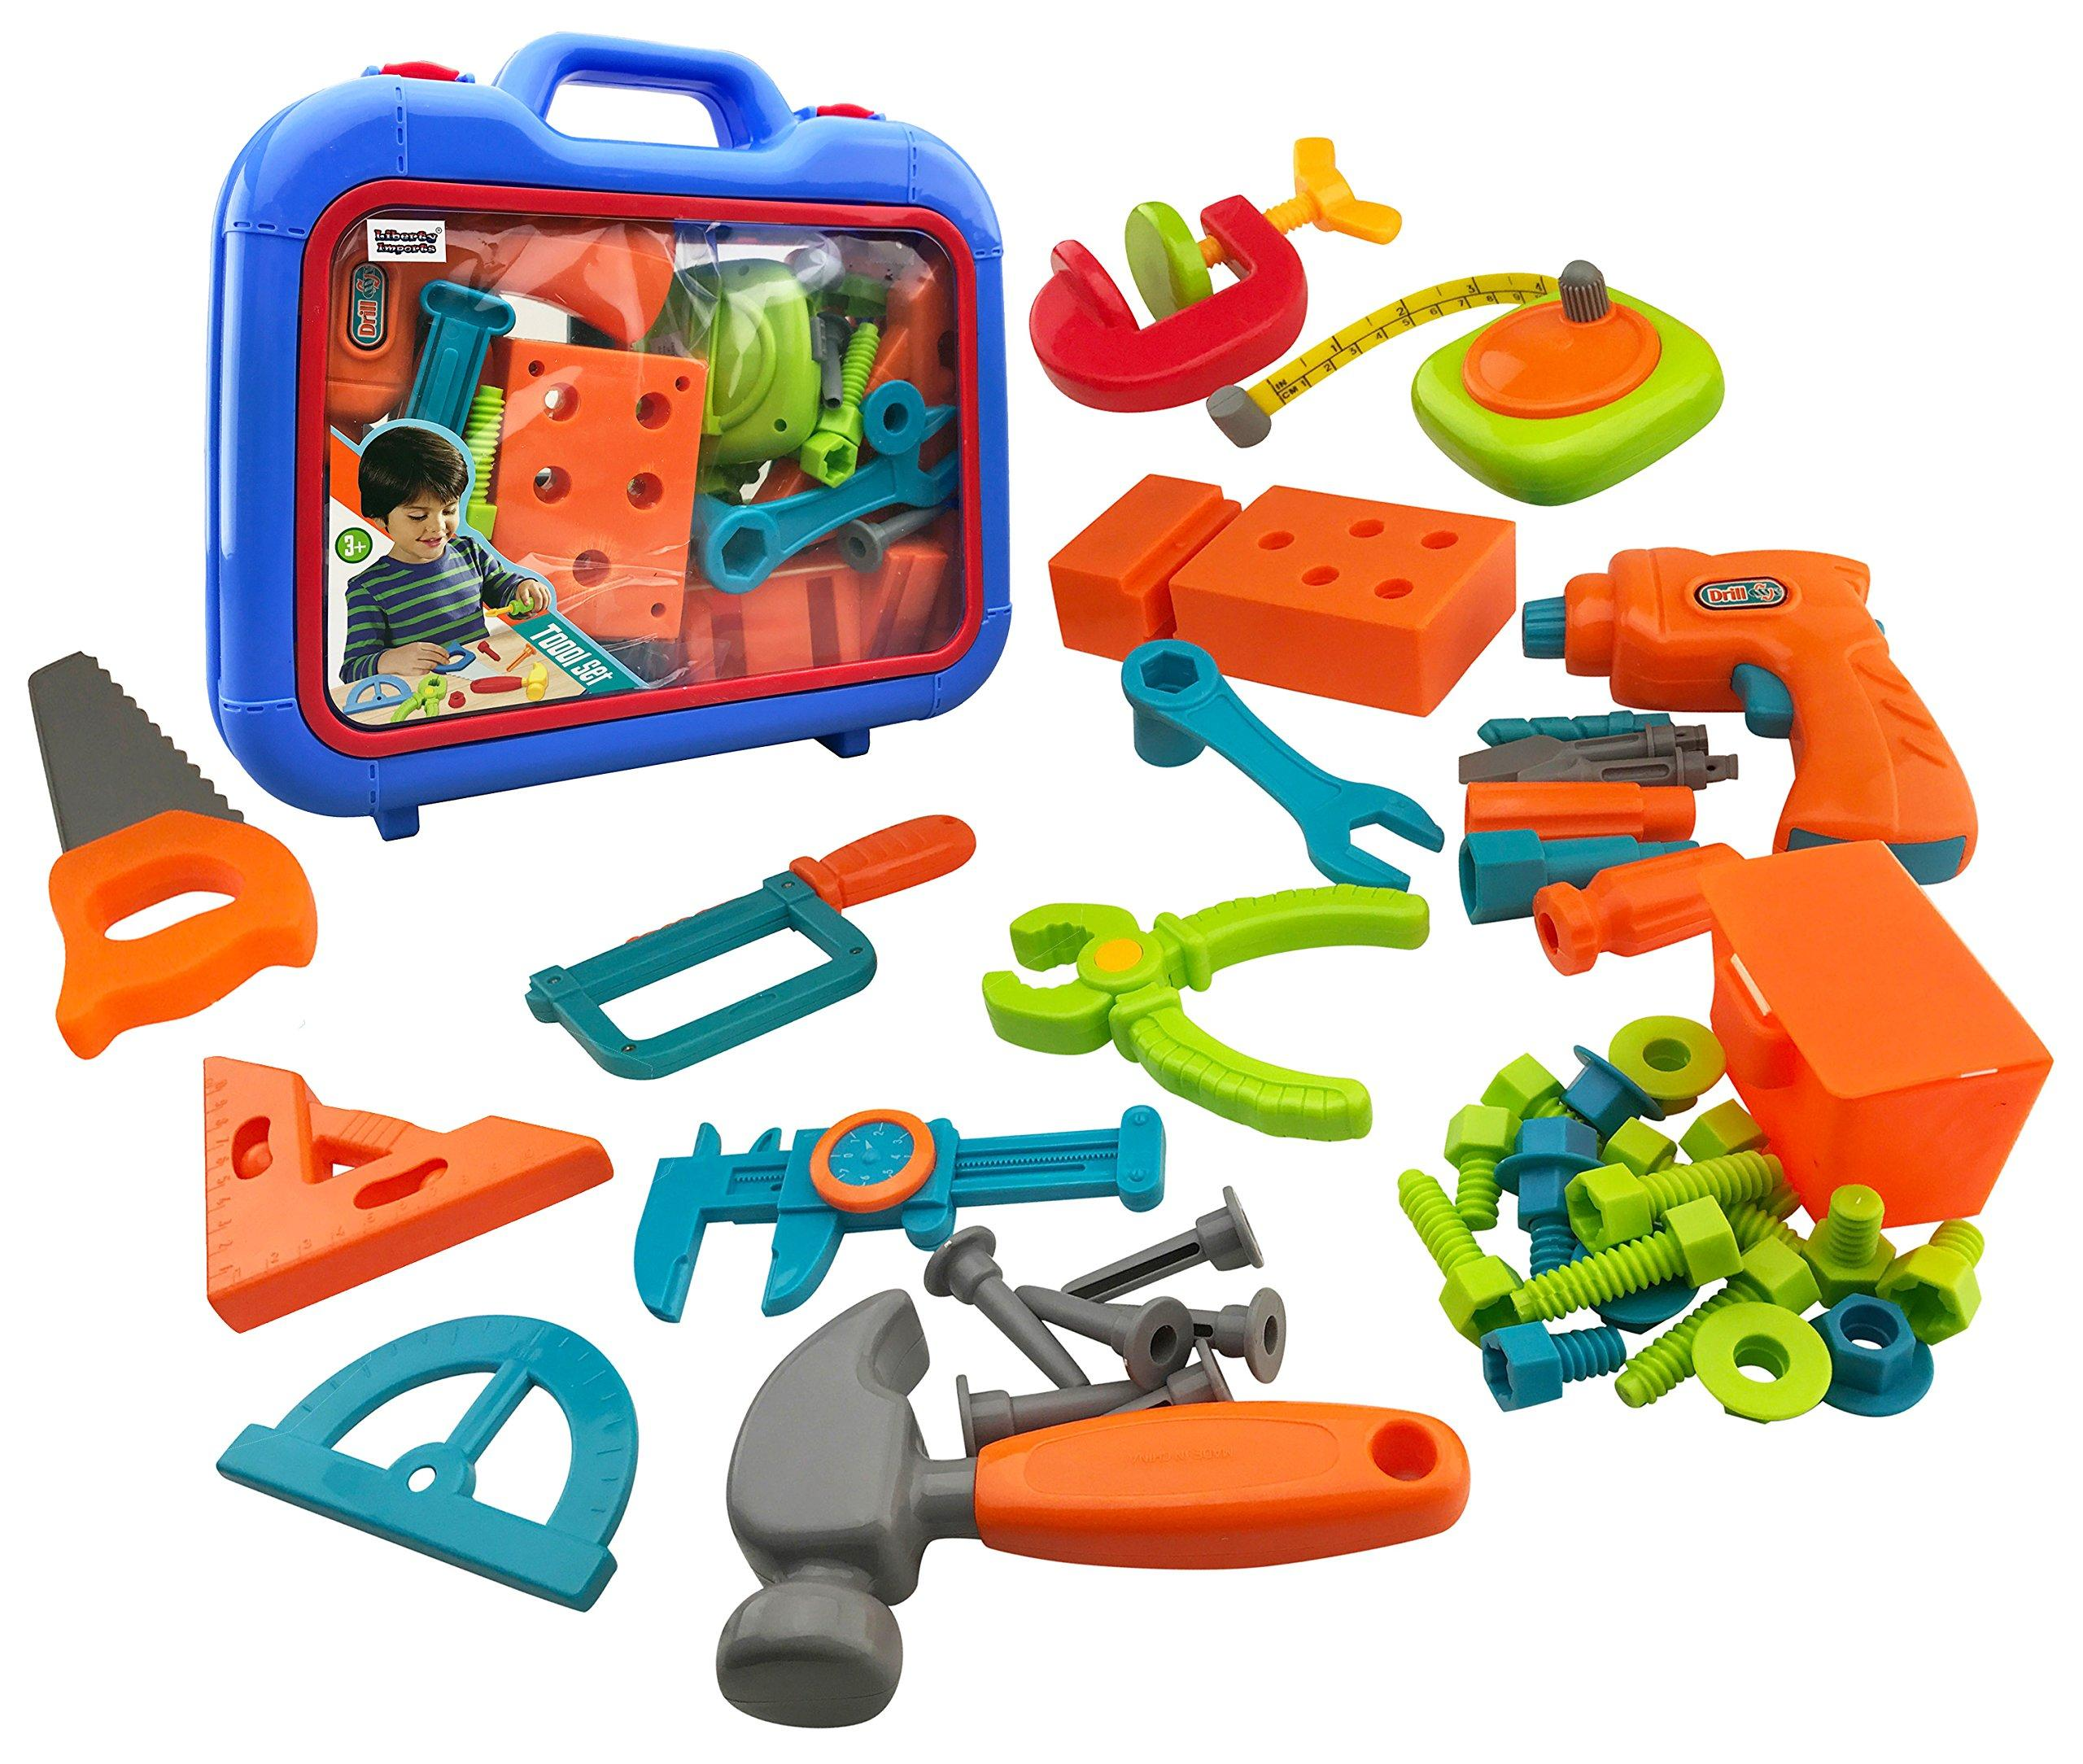 Power Tools 46-Piece Construction Toy Tool Set for Kids